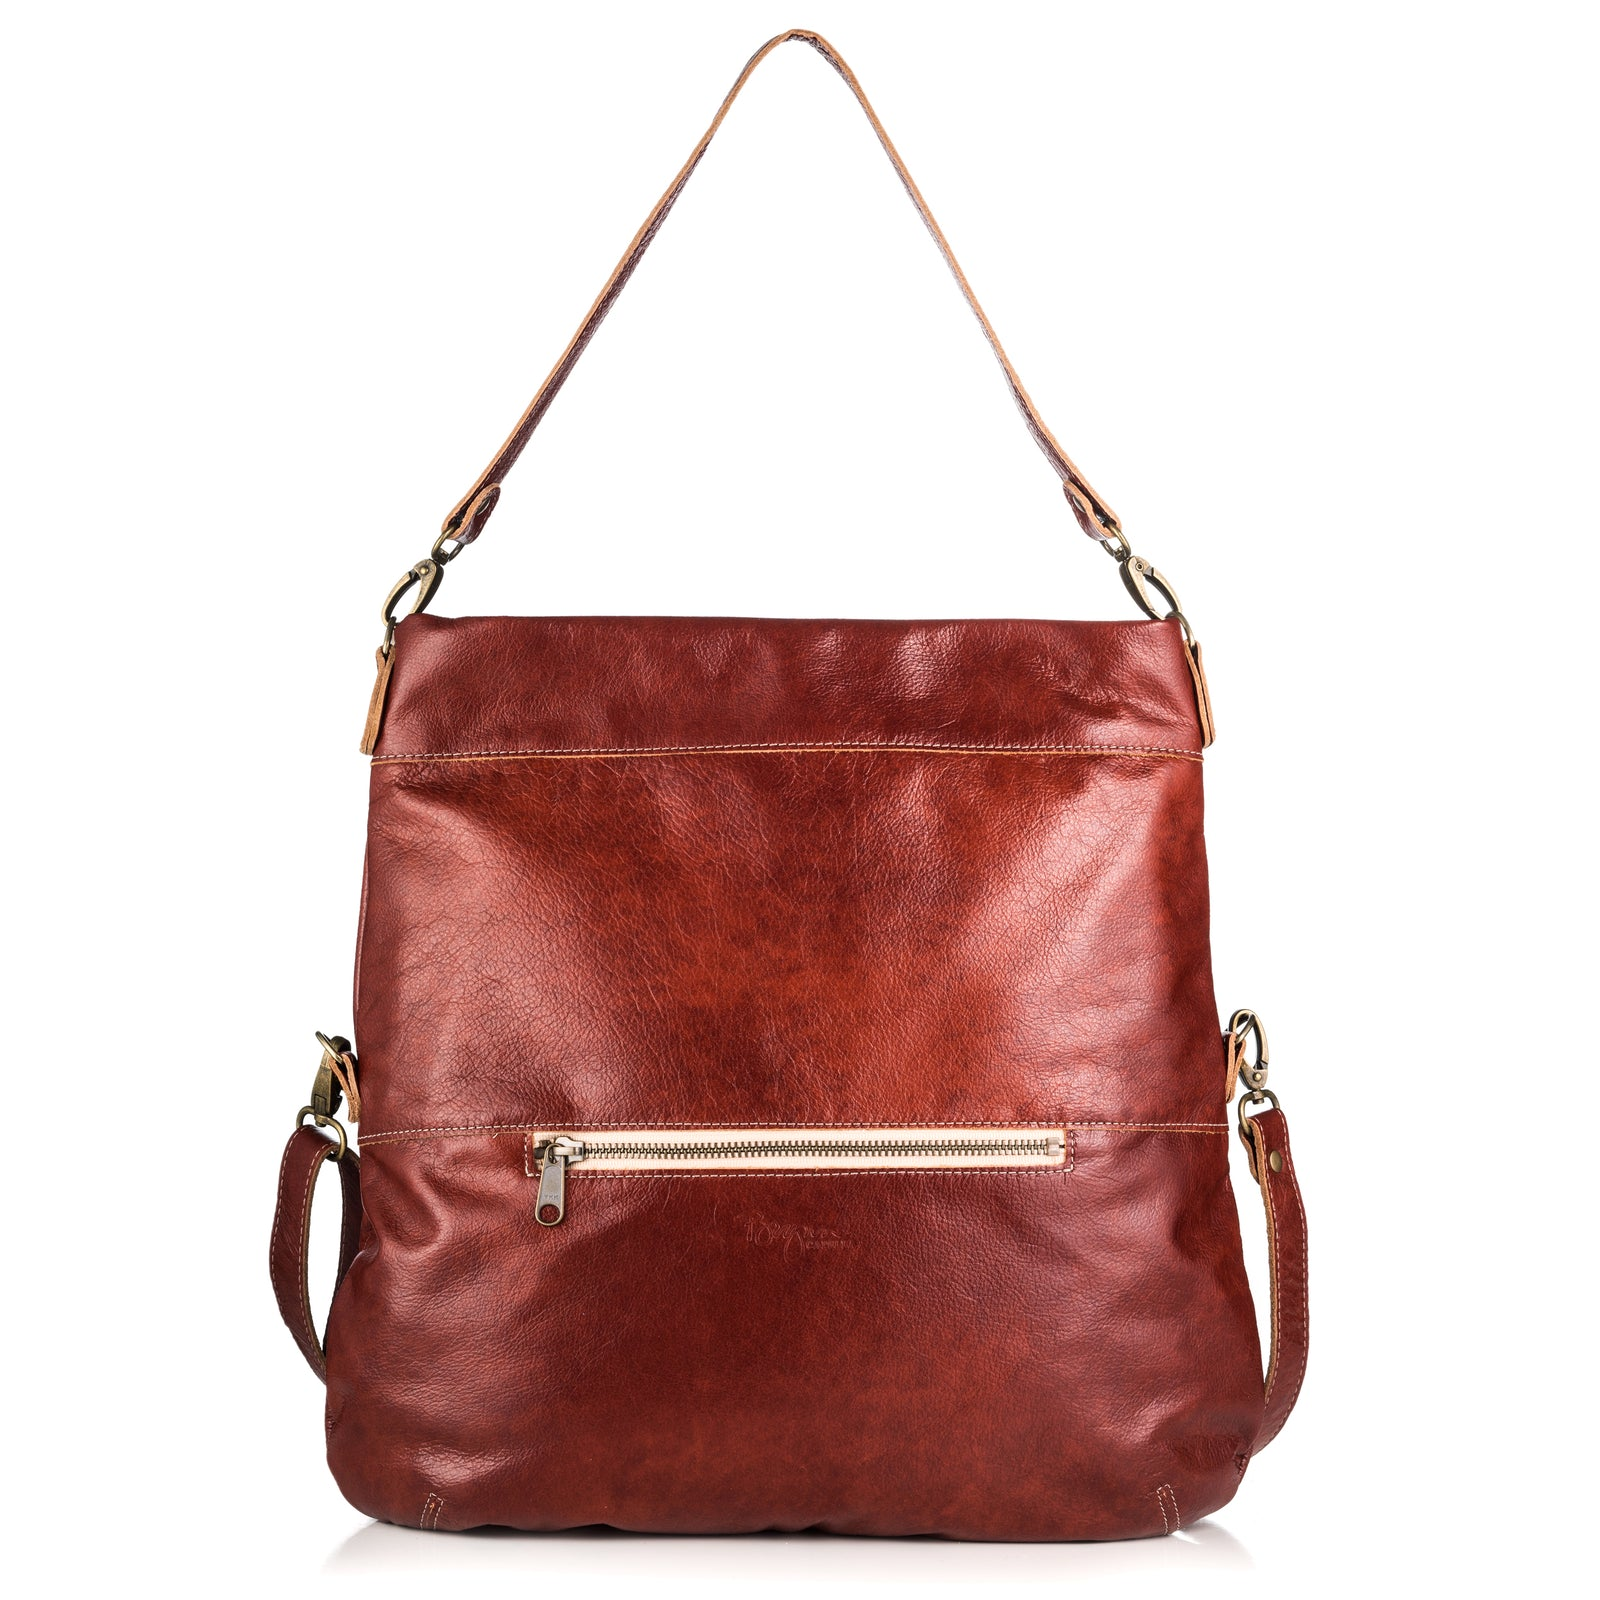 Lauren Crossbody - Rustic Clay - Brynn Capella, Large Crossbody